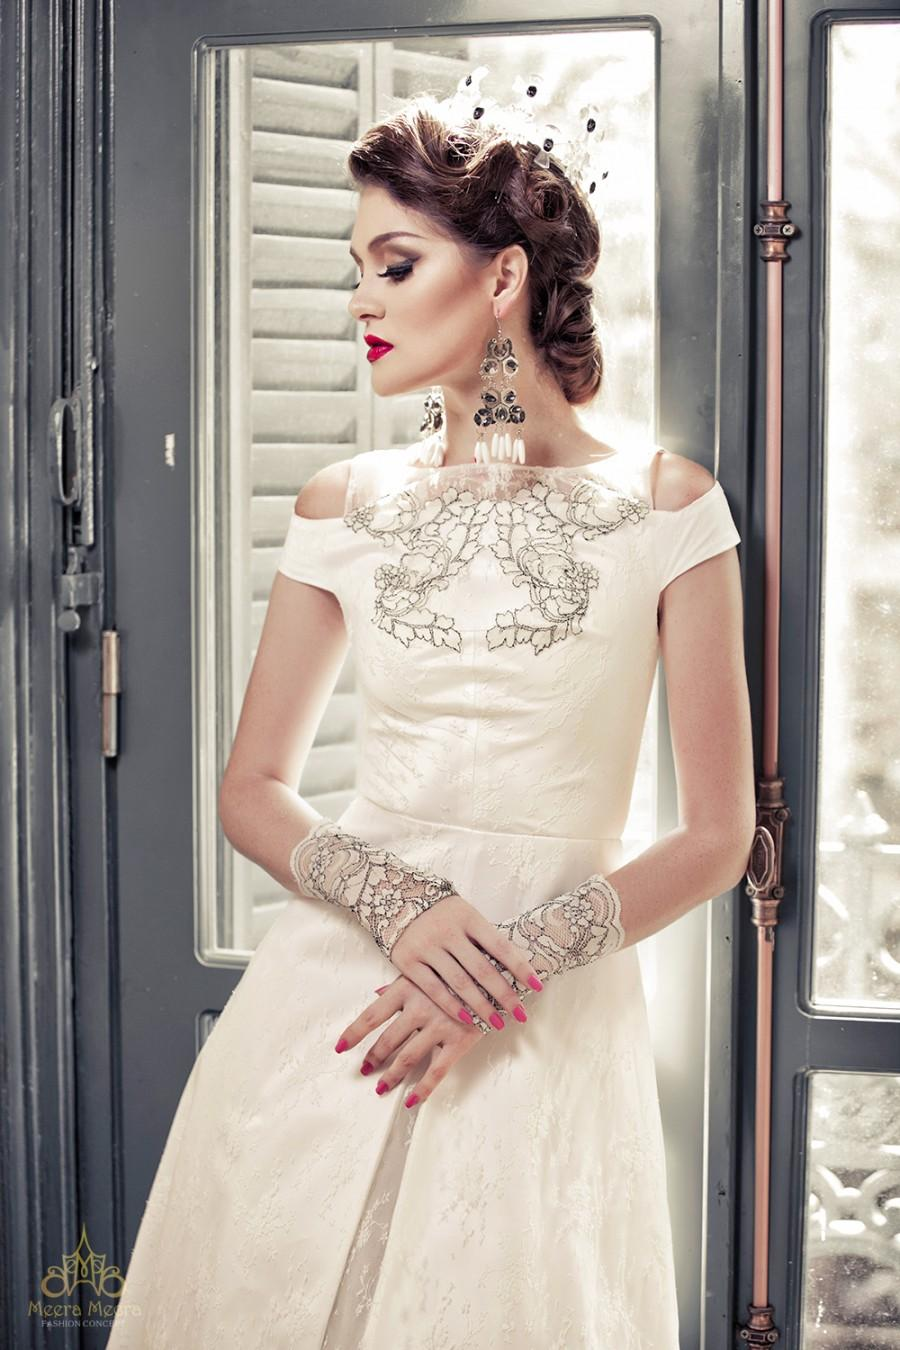 Wedding - A-line wedding dress with cut-out detail, bead lace in classic split gown